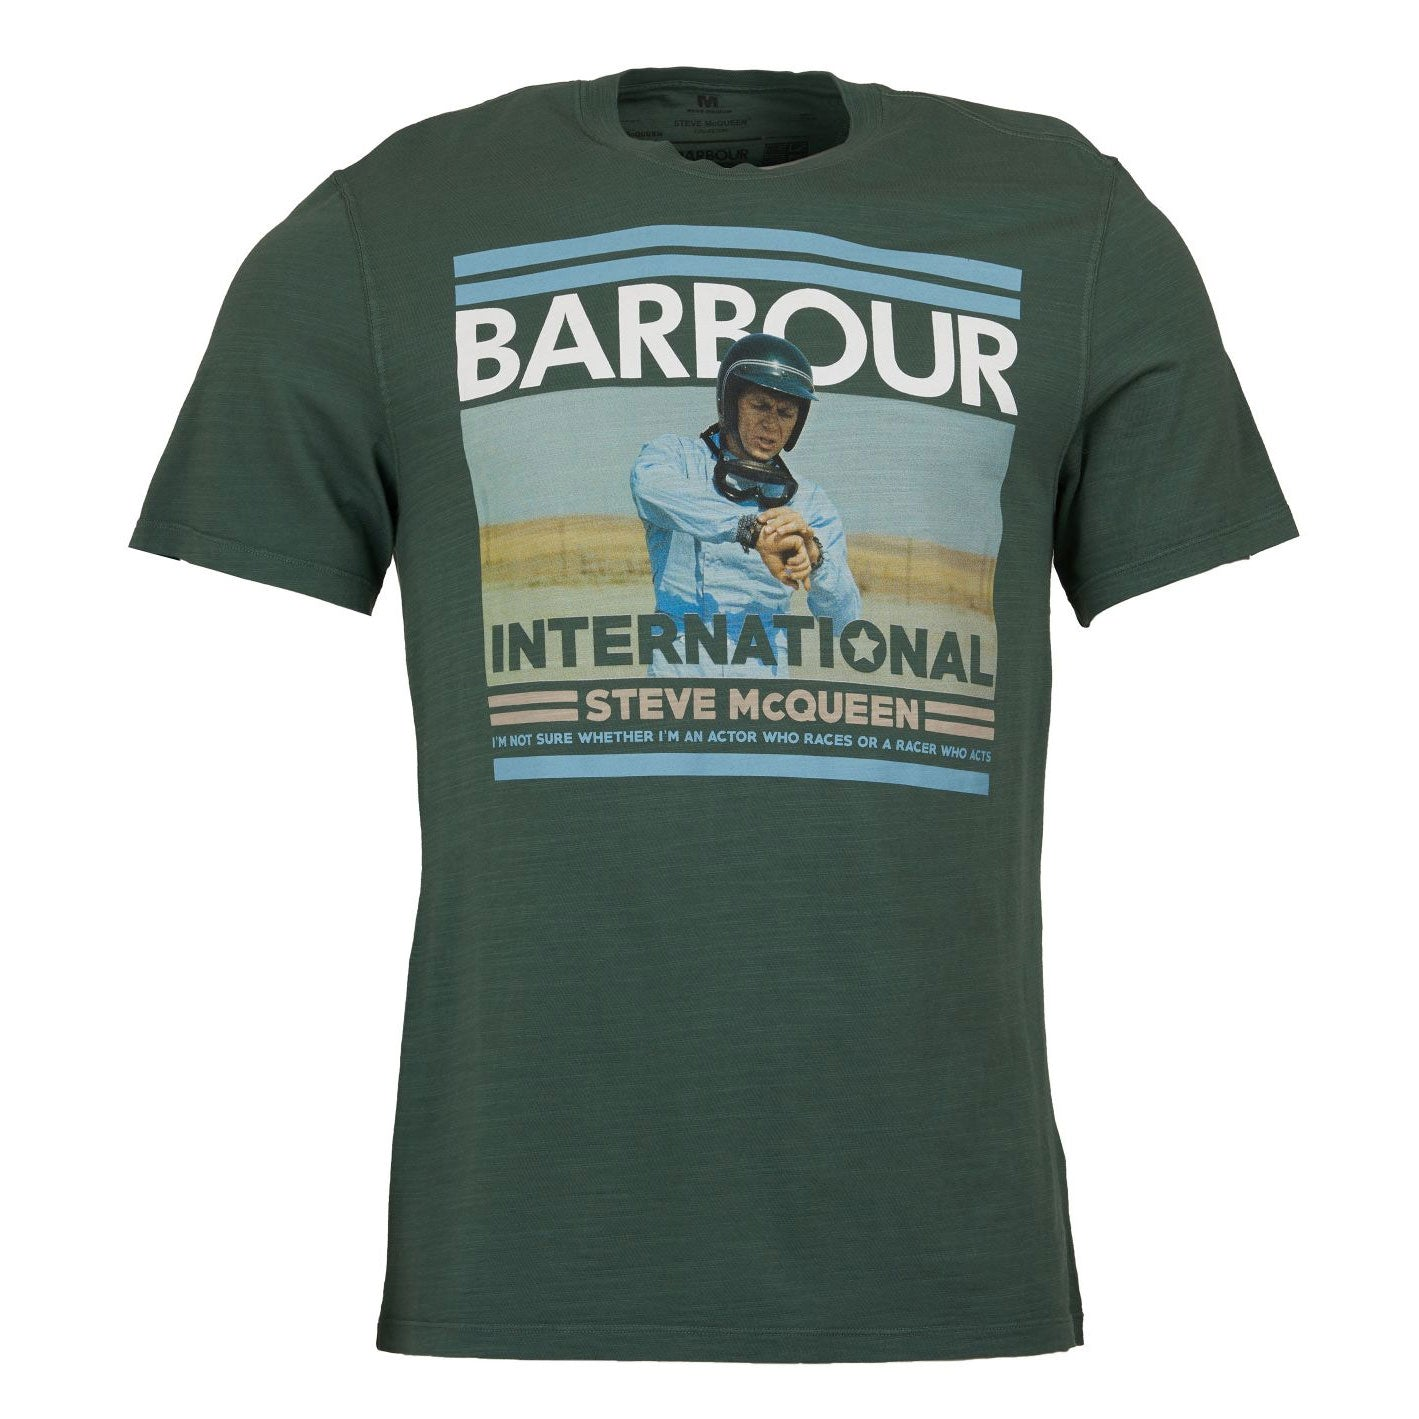 Barbour International Steve McQueen Time T-shirt Washed Khaki Green